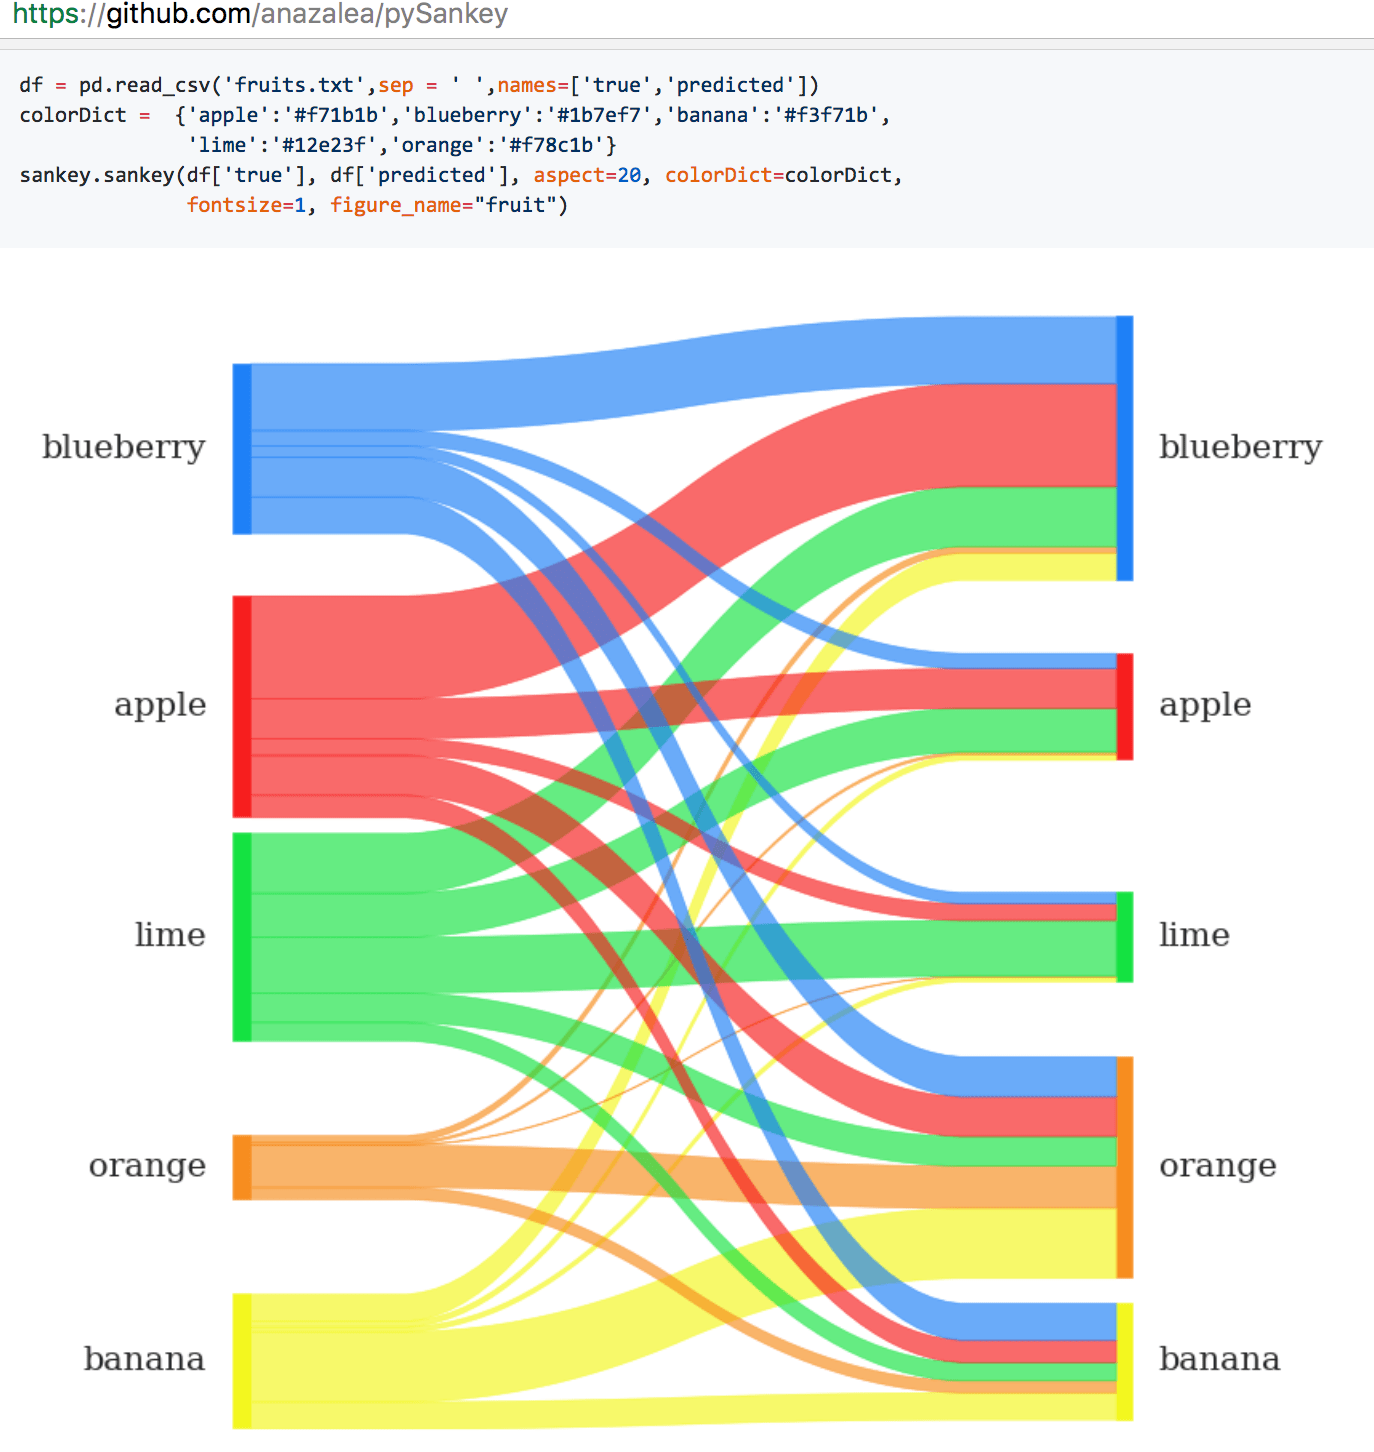 how to do a sankey diagram single phase fan motor wiring with capacitor quick round up visualising flows using network and diagrams in python r bloggers